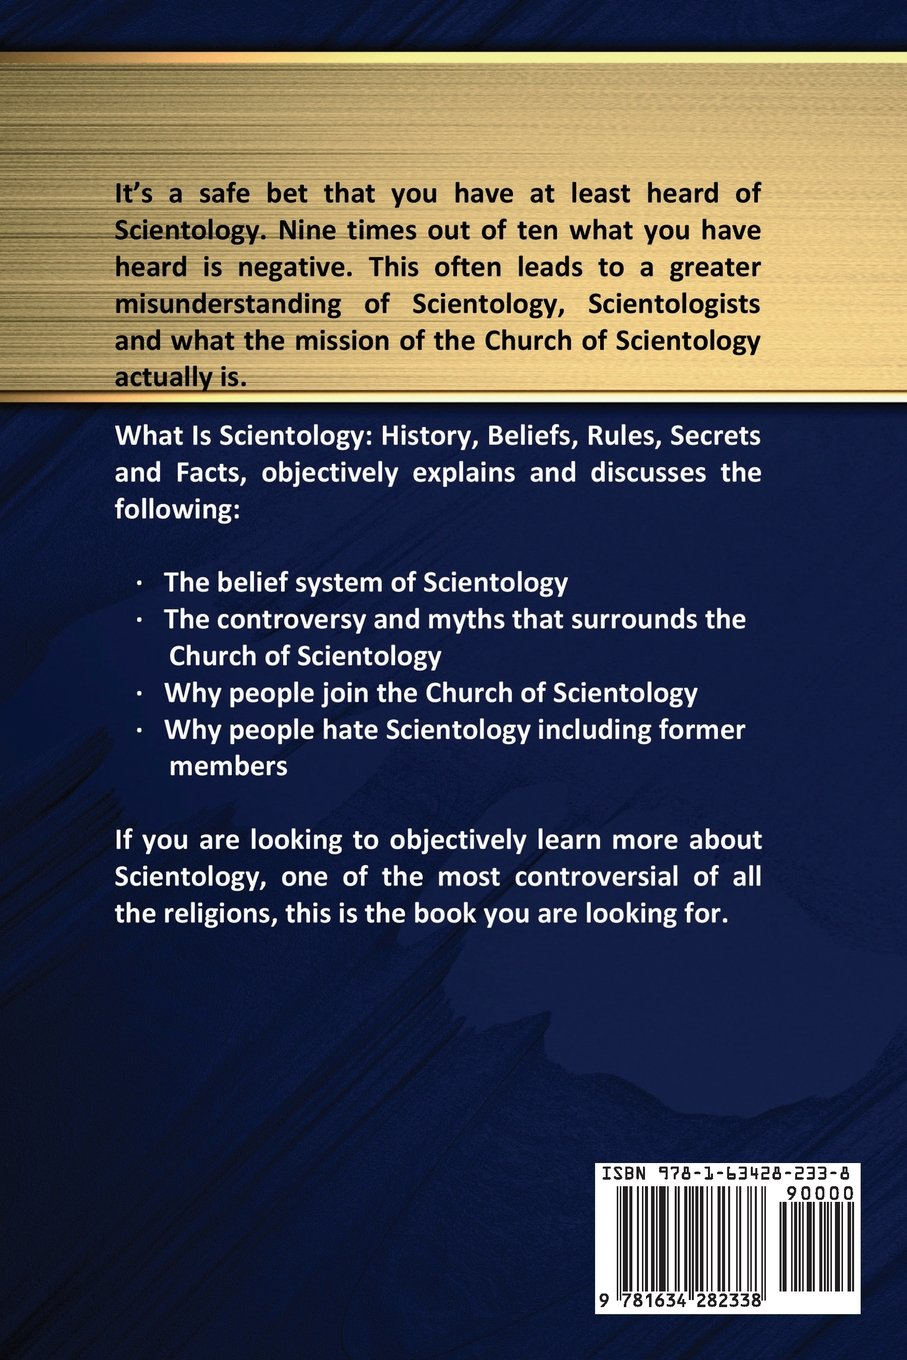 what is scientology history beliefs rules secrets and facts